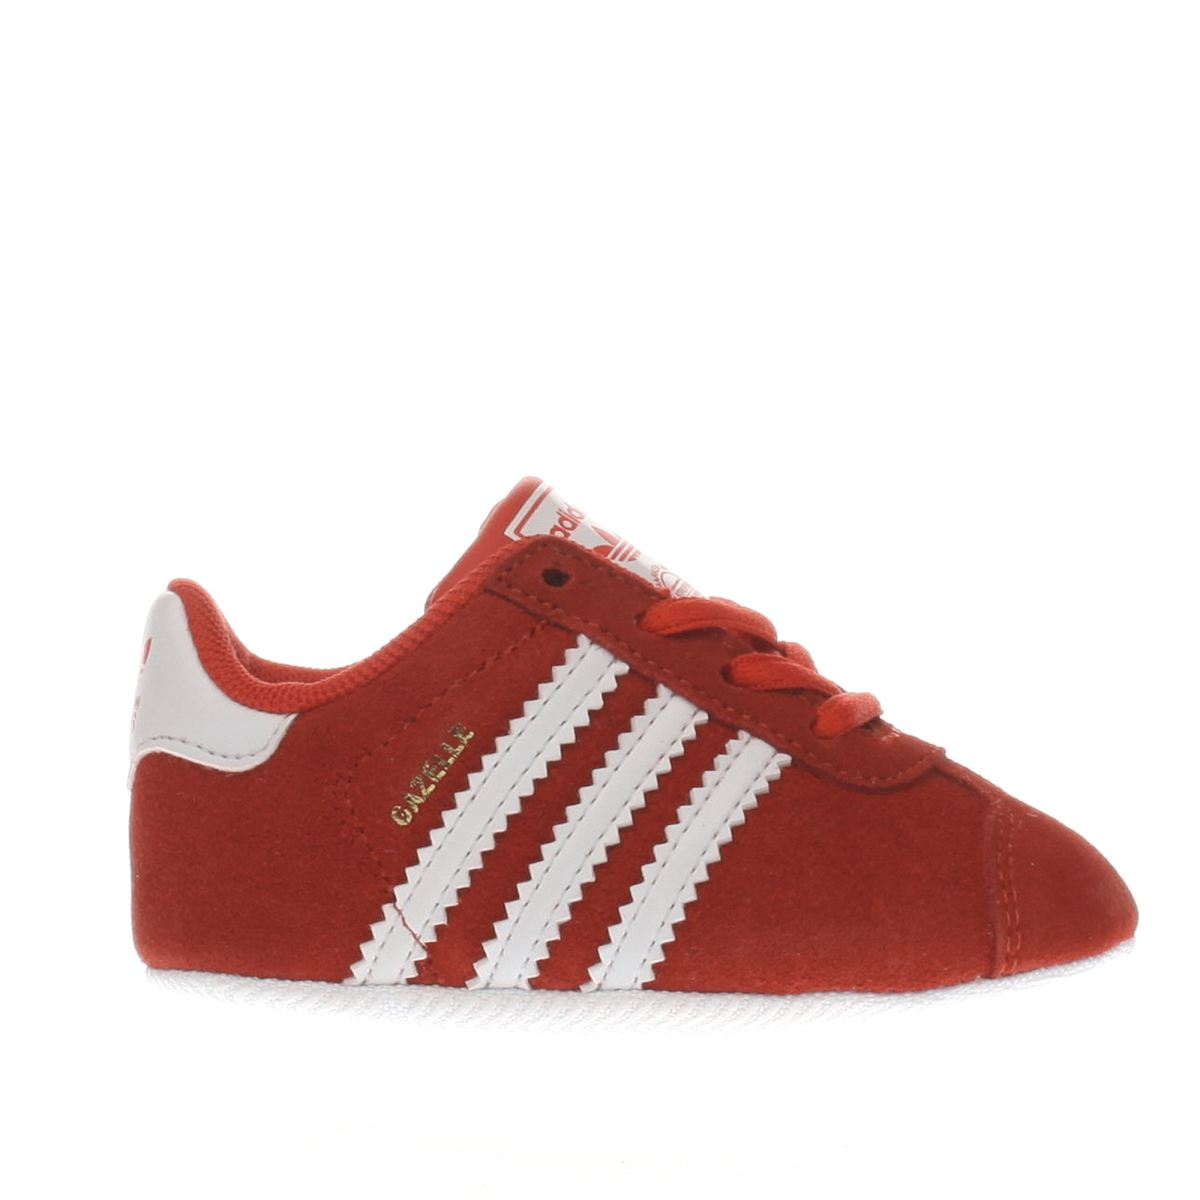 Adidas Shoes For Girls Red